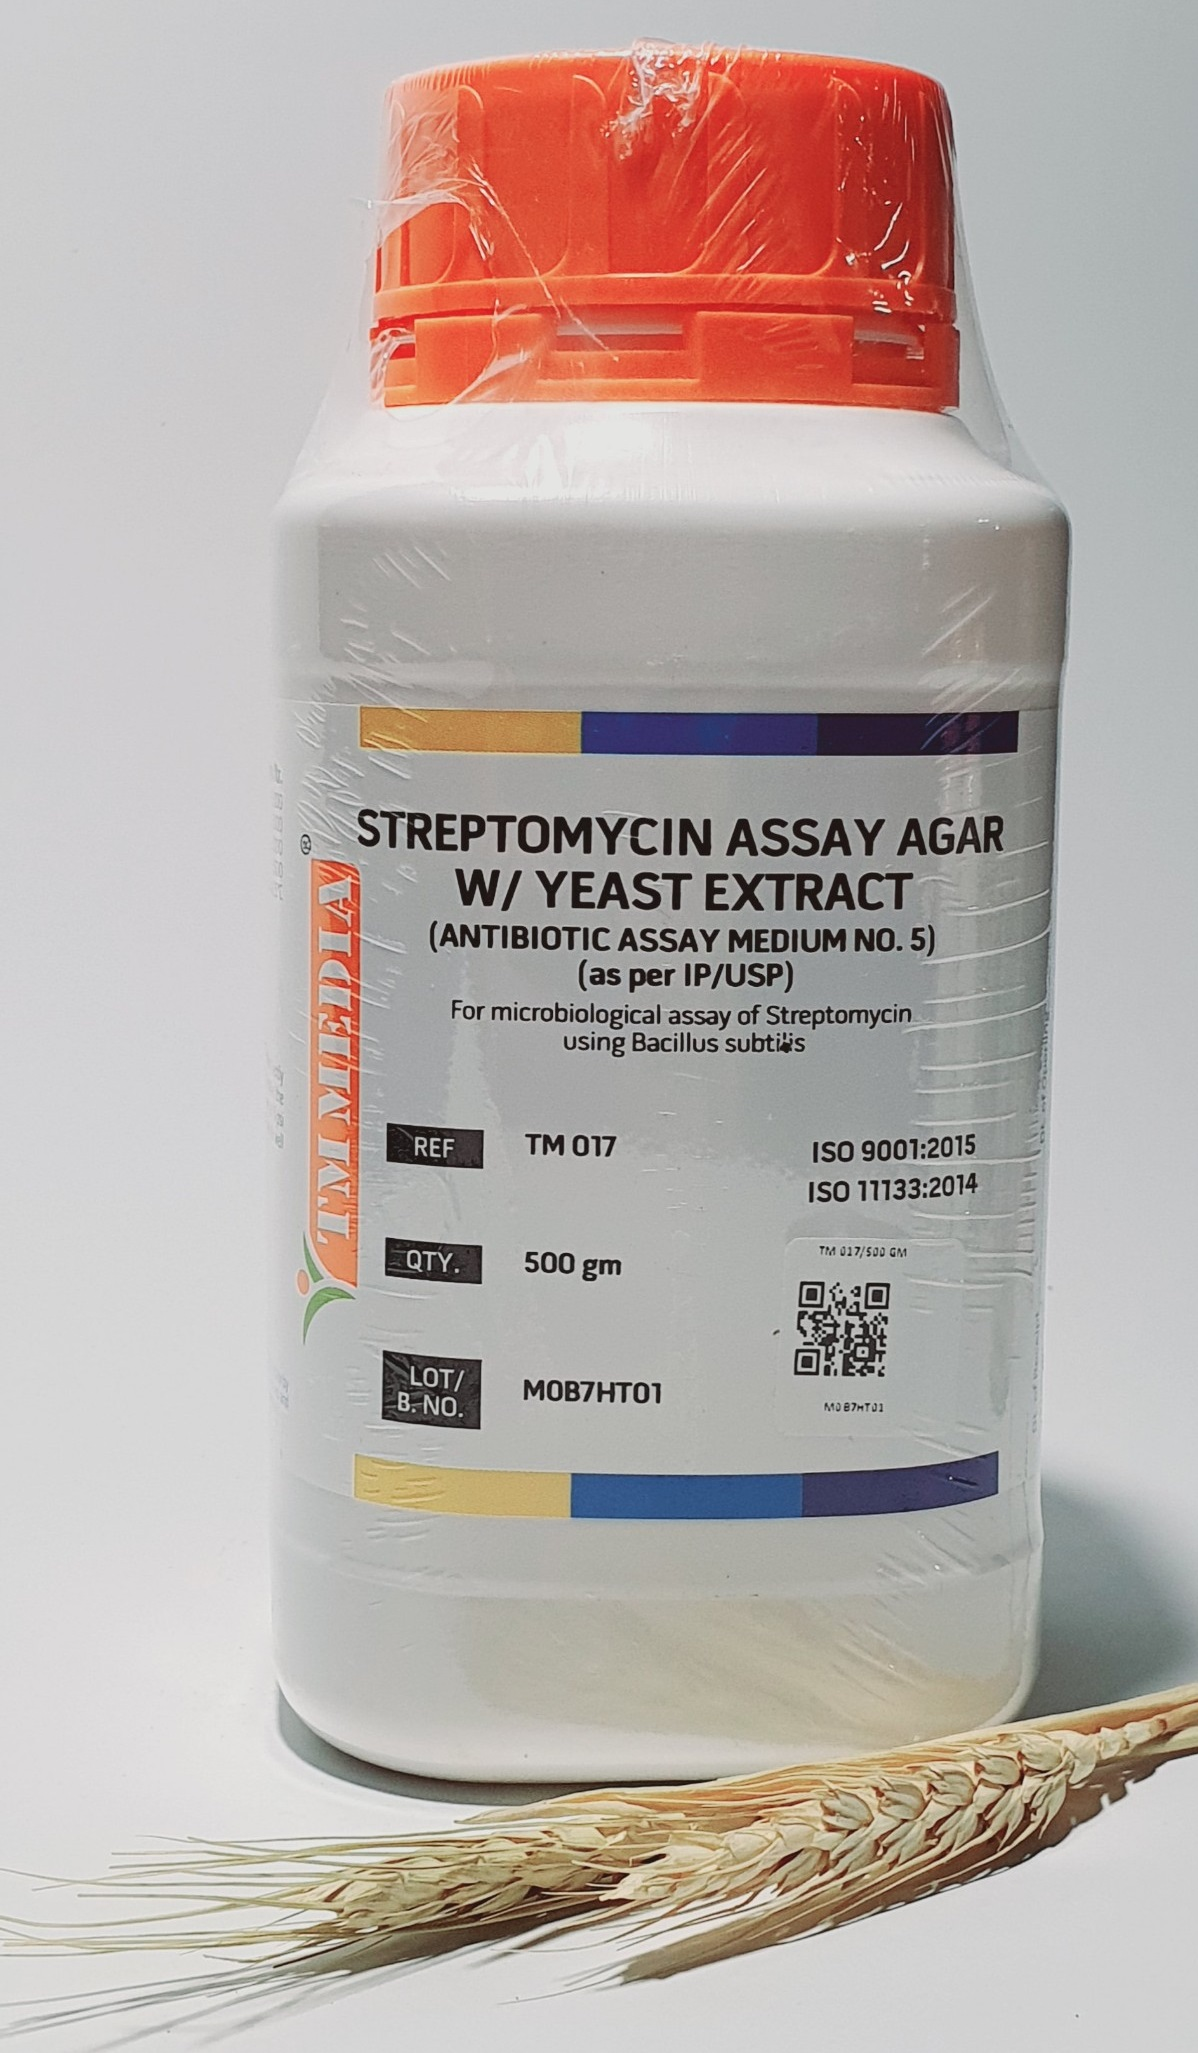 Antibiotic Assay Medium No. 5